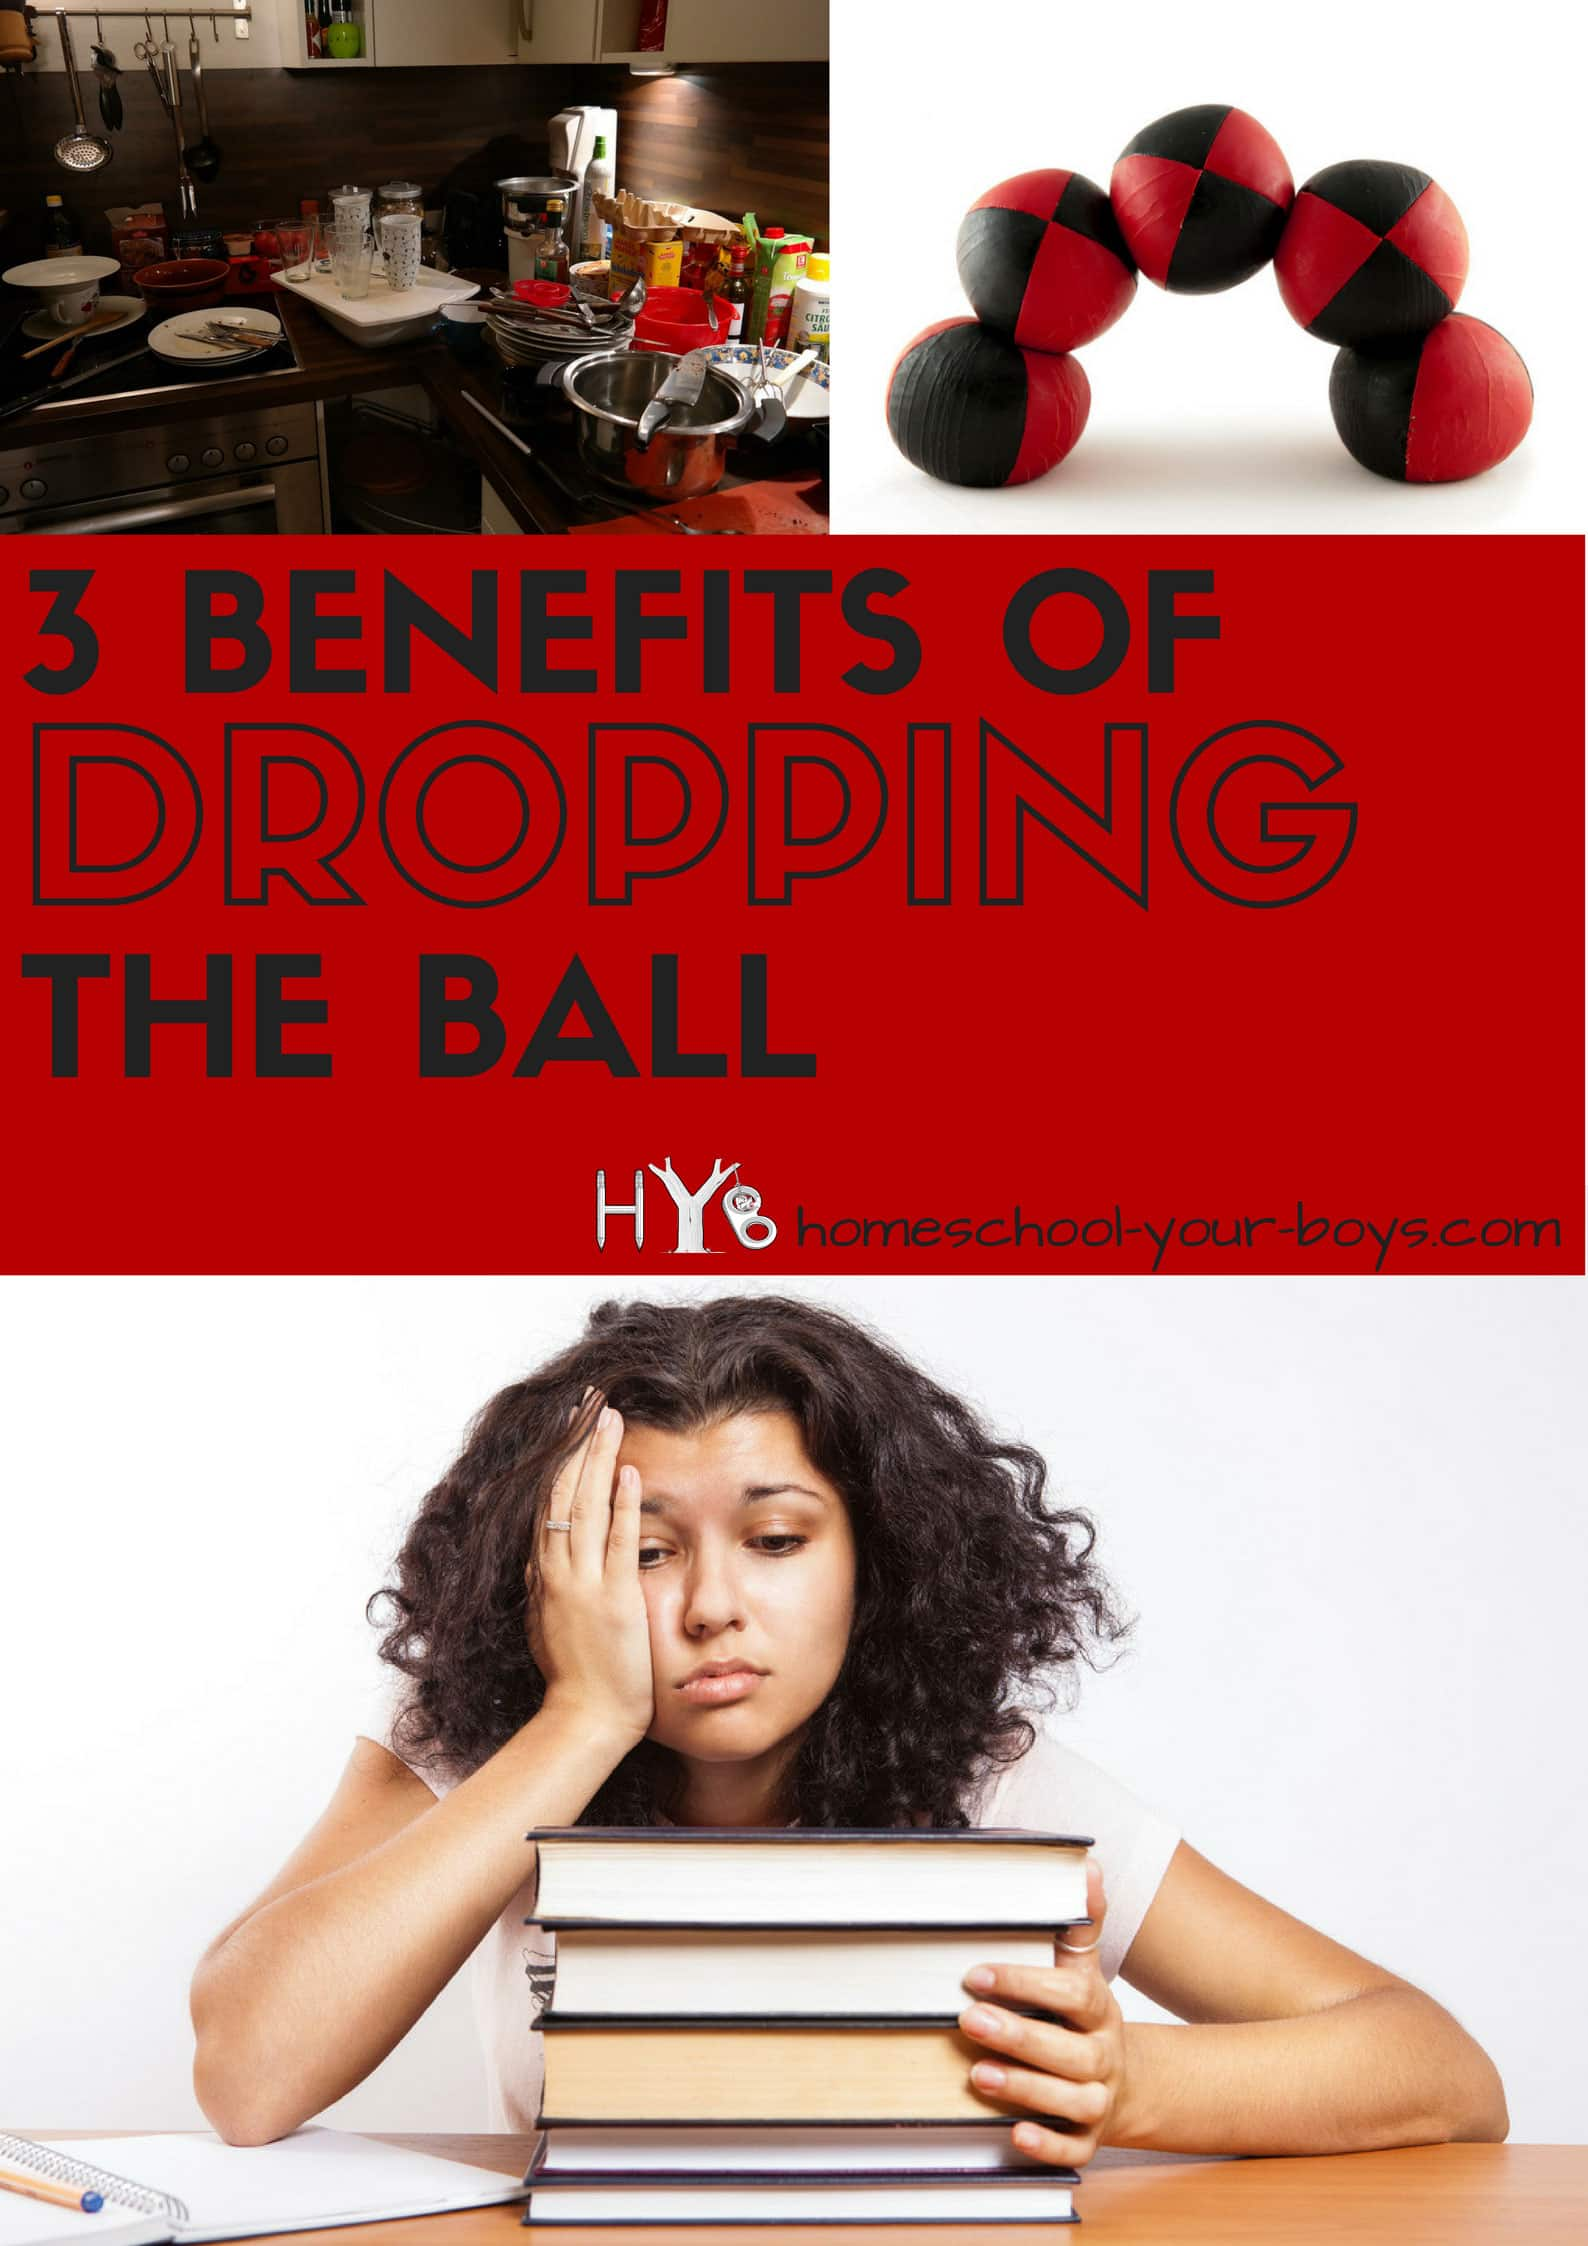 3 Benefits of Dropping the Ball